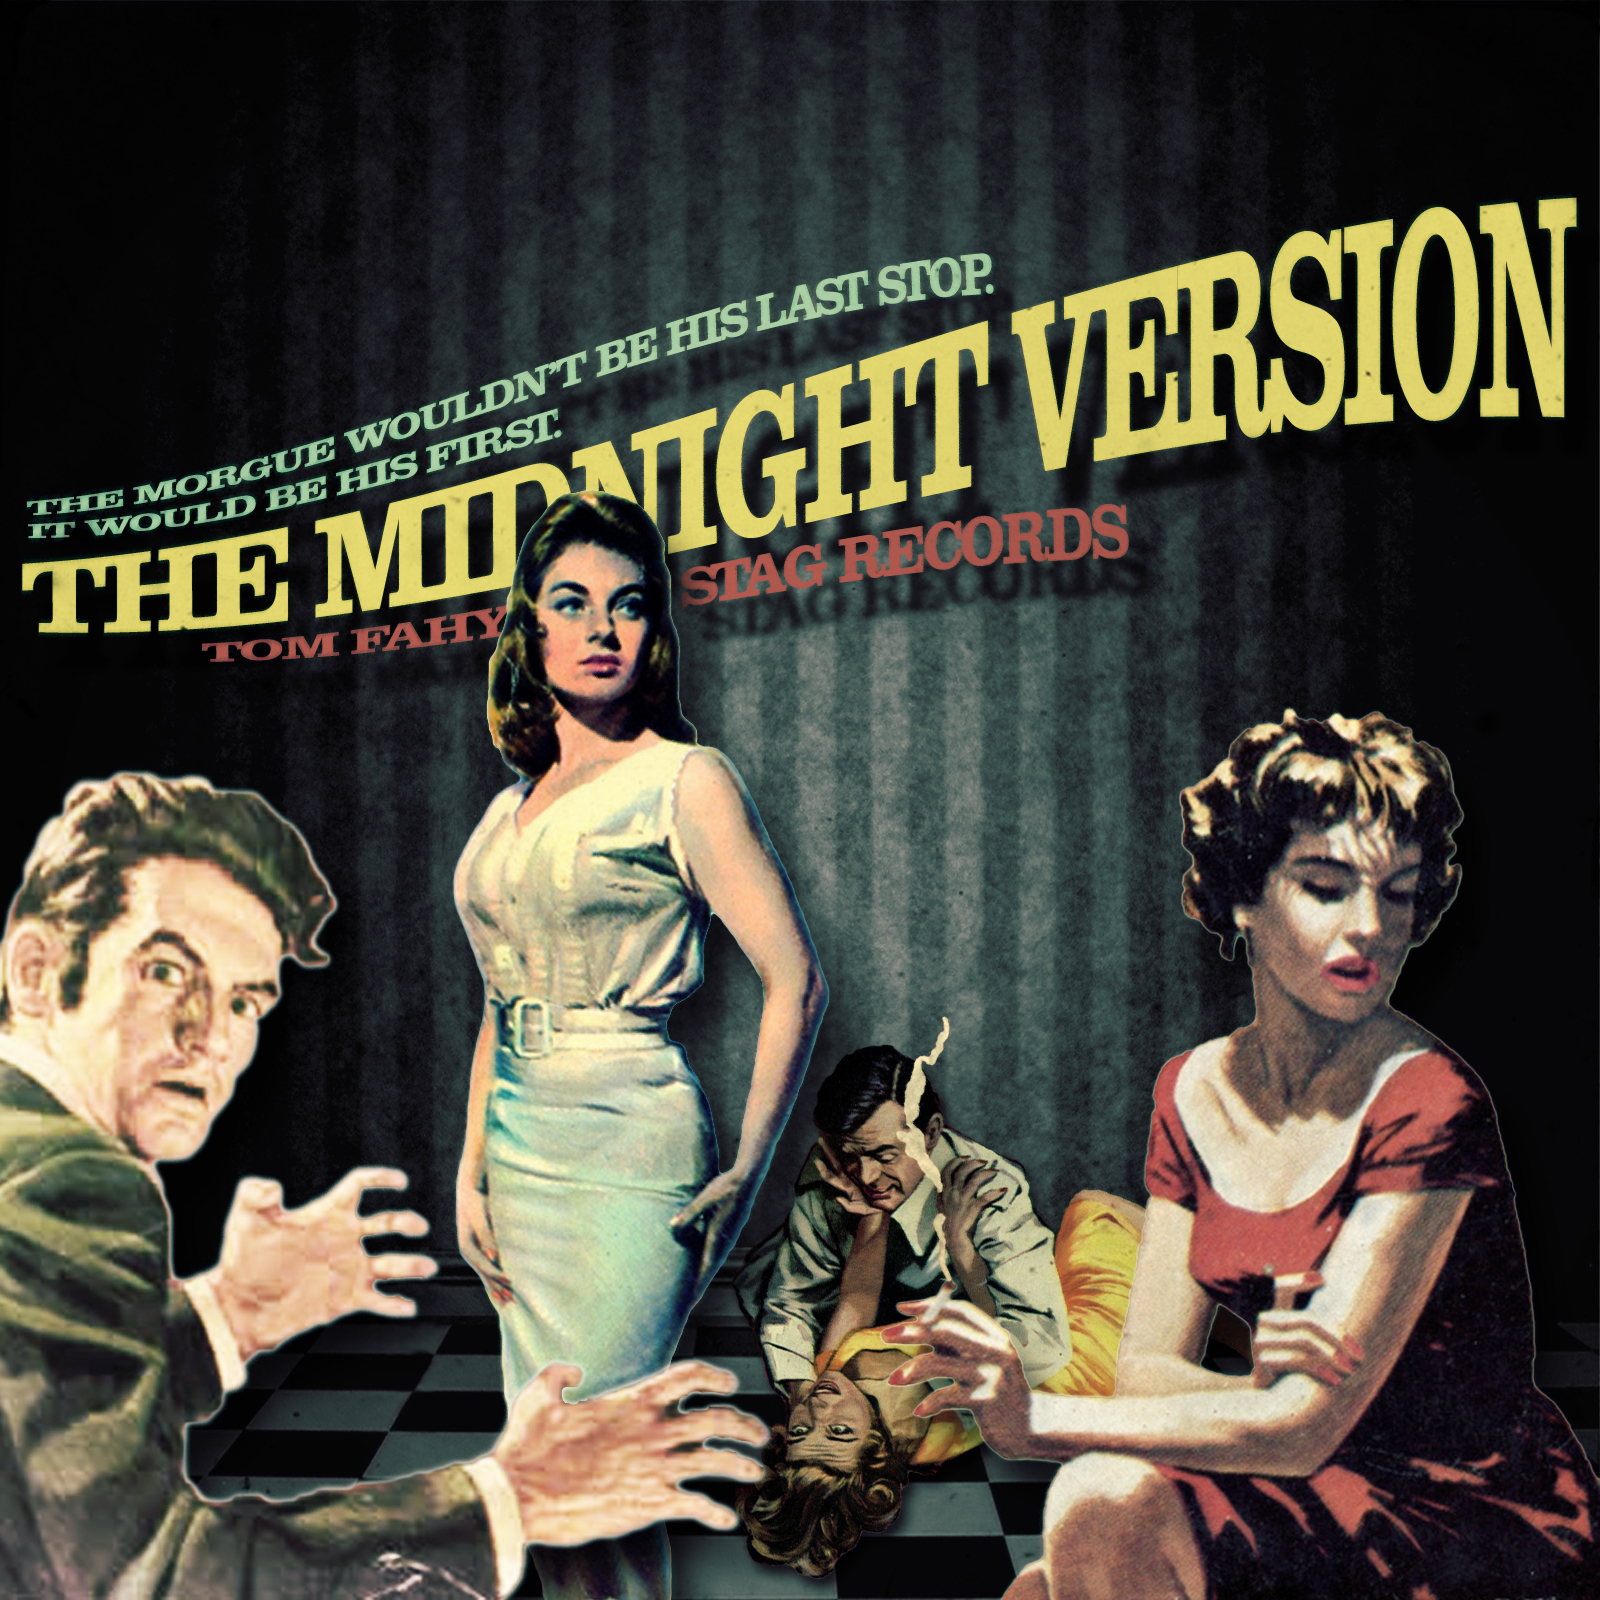 The Midnight Version, by Tom Fahy (2001)